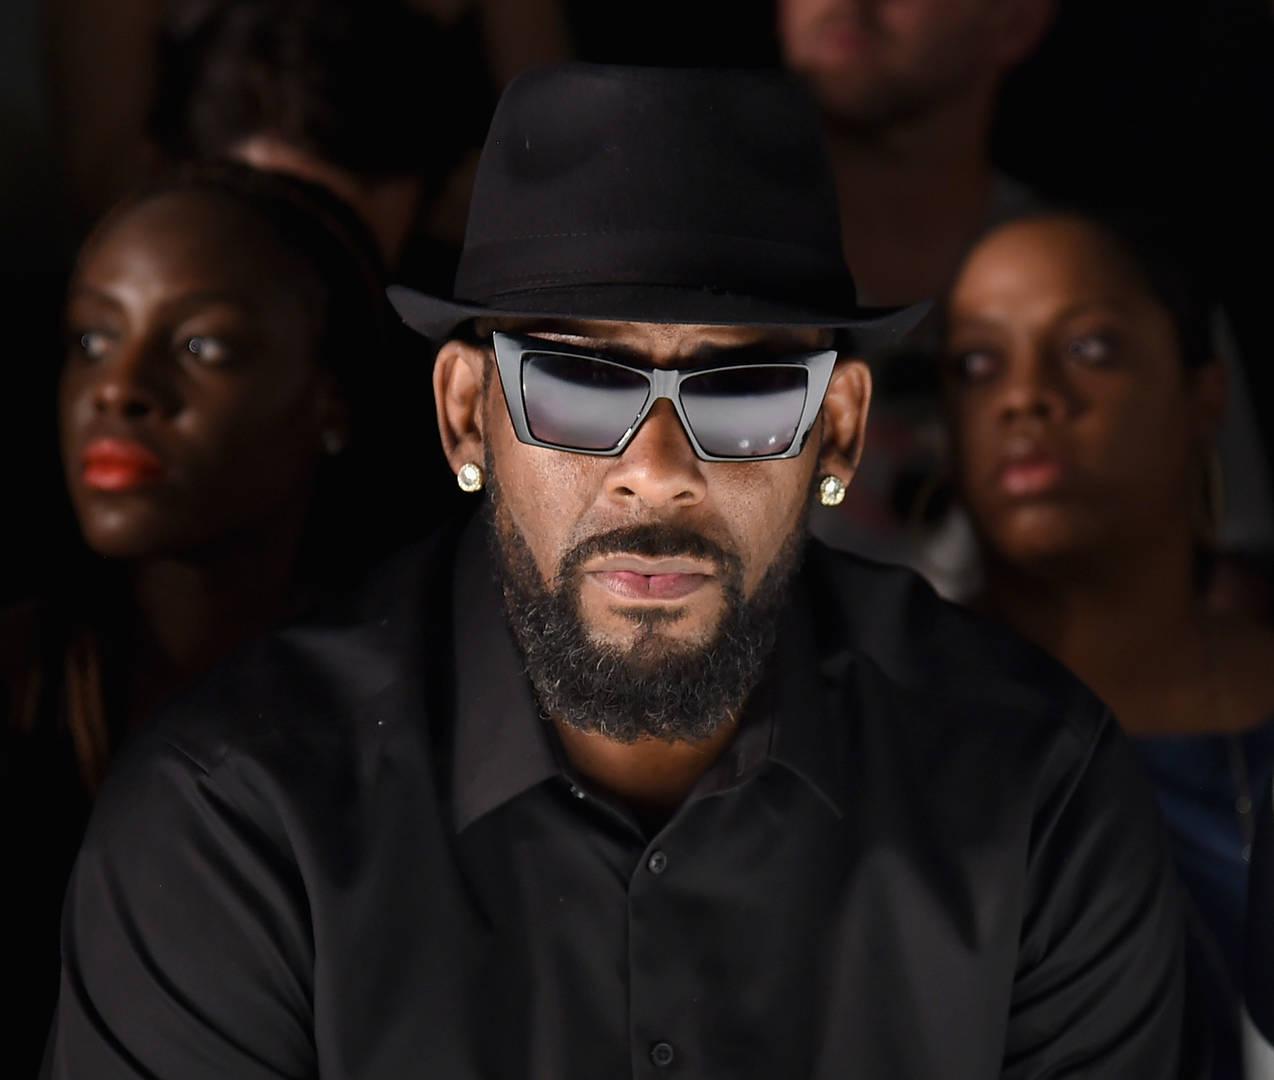 R&B artist R. Kelly charged with 10 counts of aggravated sexual abuse